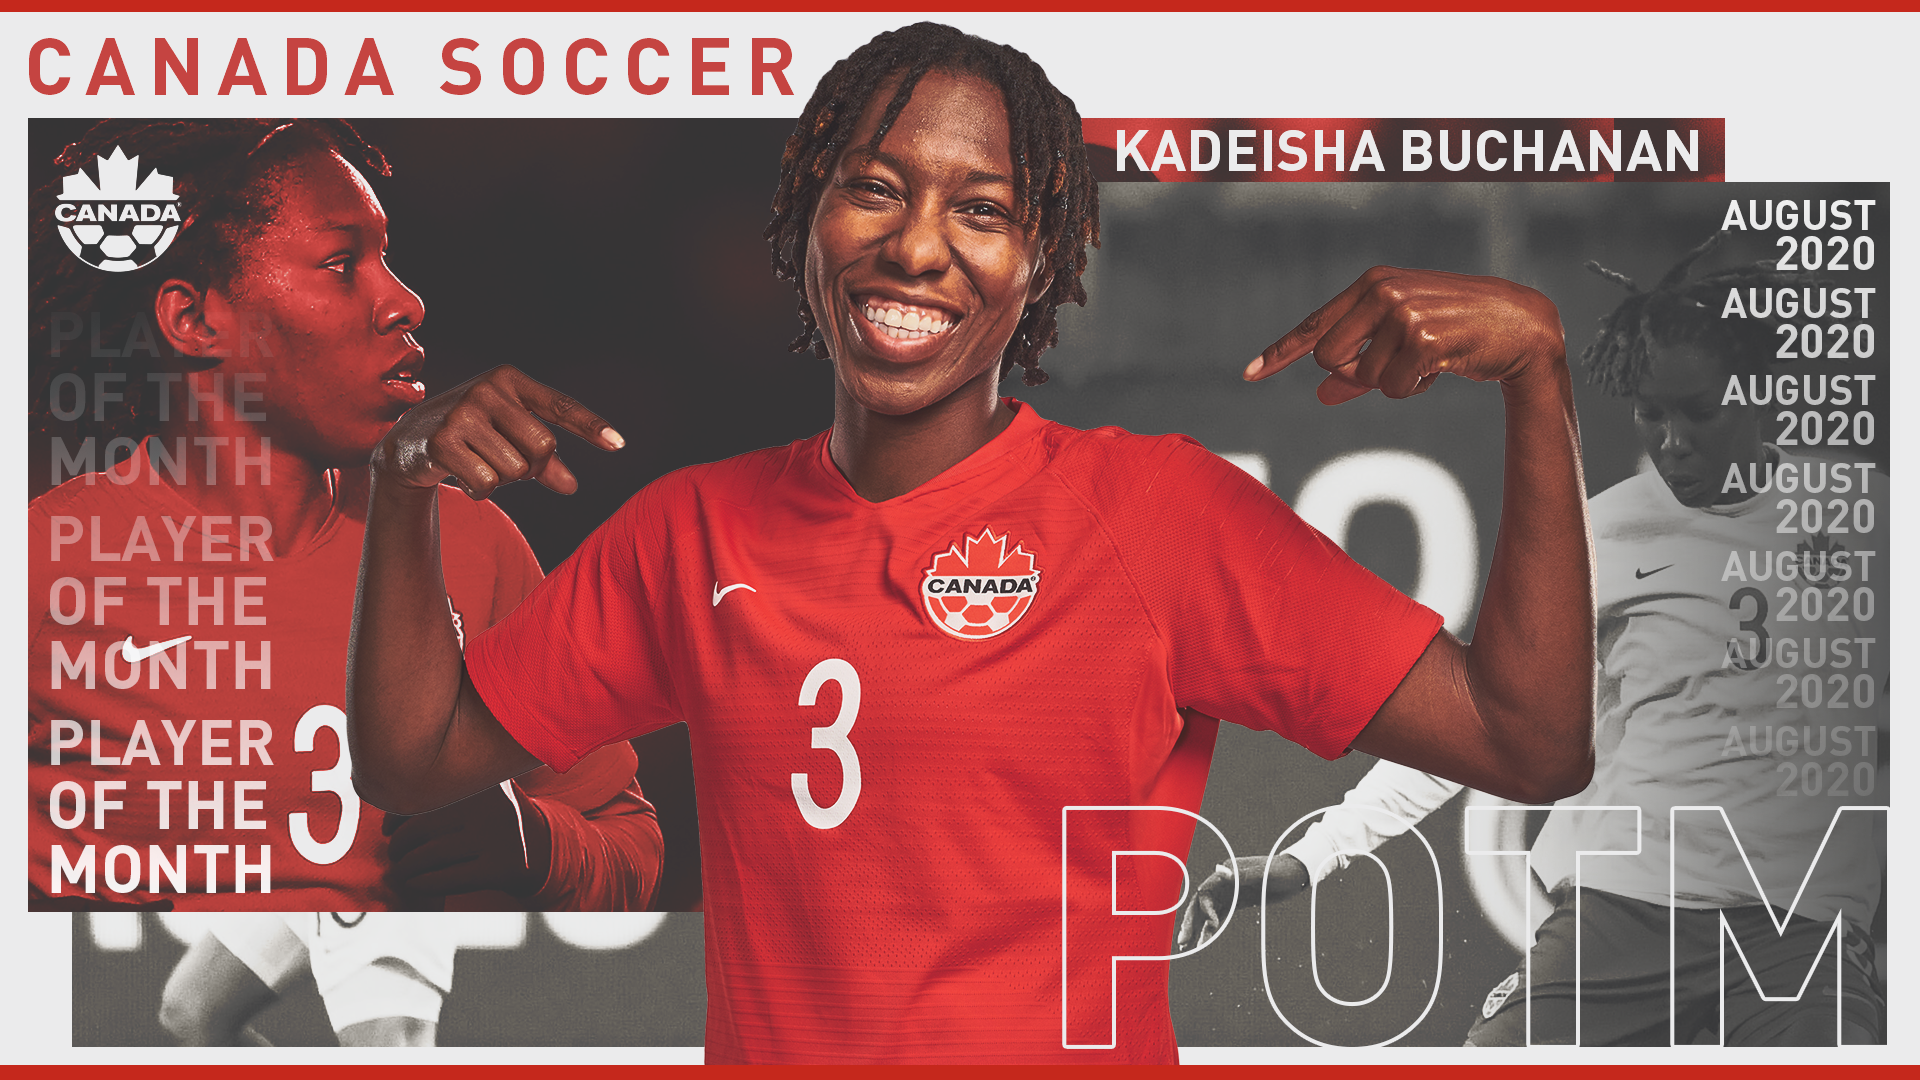 Kadeisha Buchanan, player of the Month